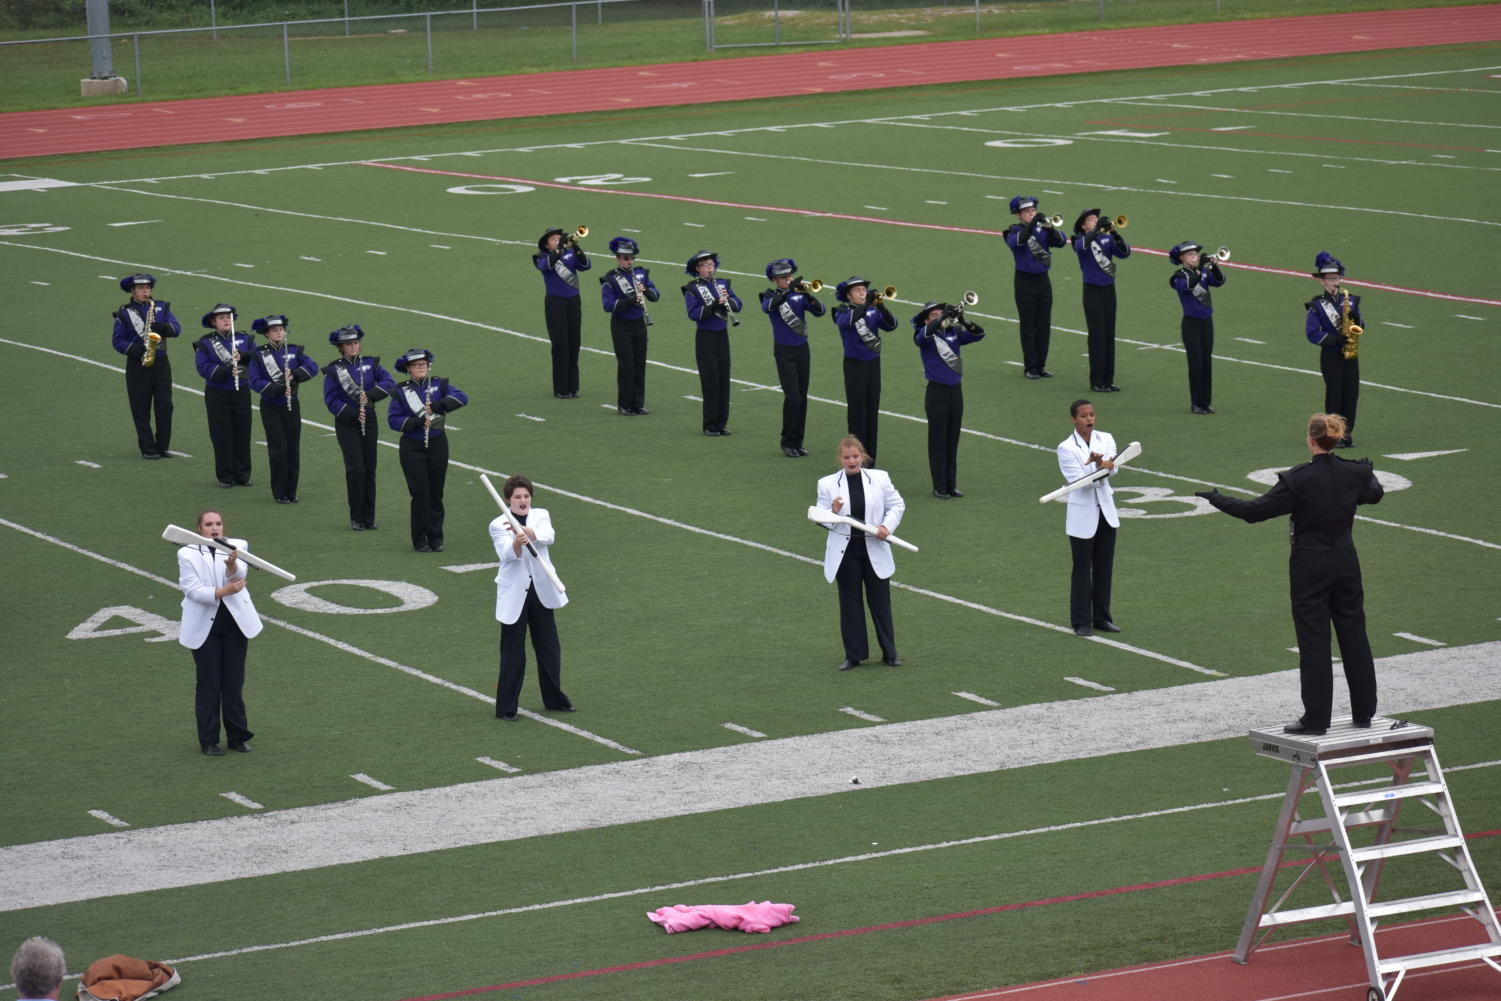 The marching band performs at a competition